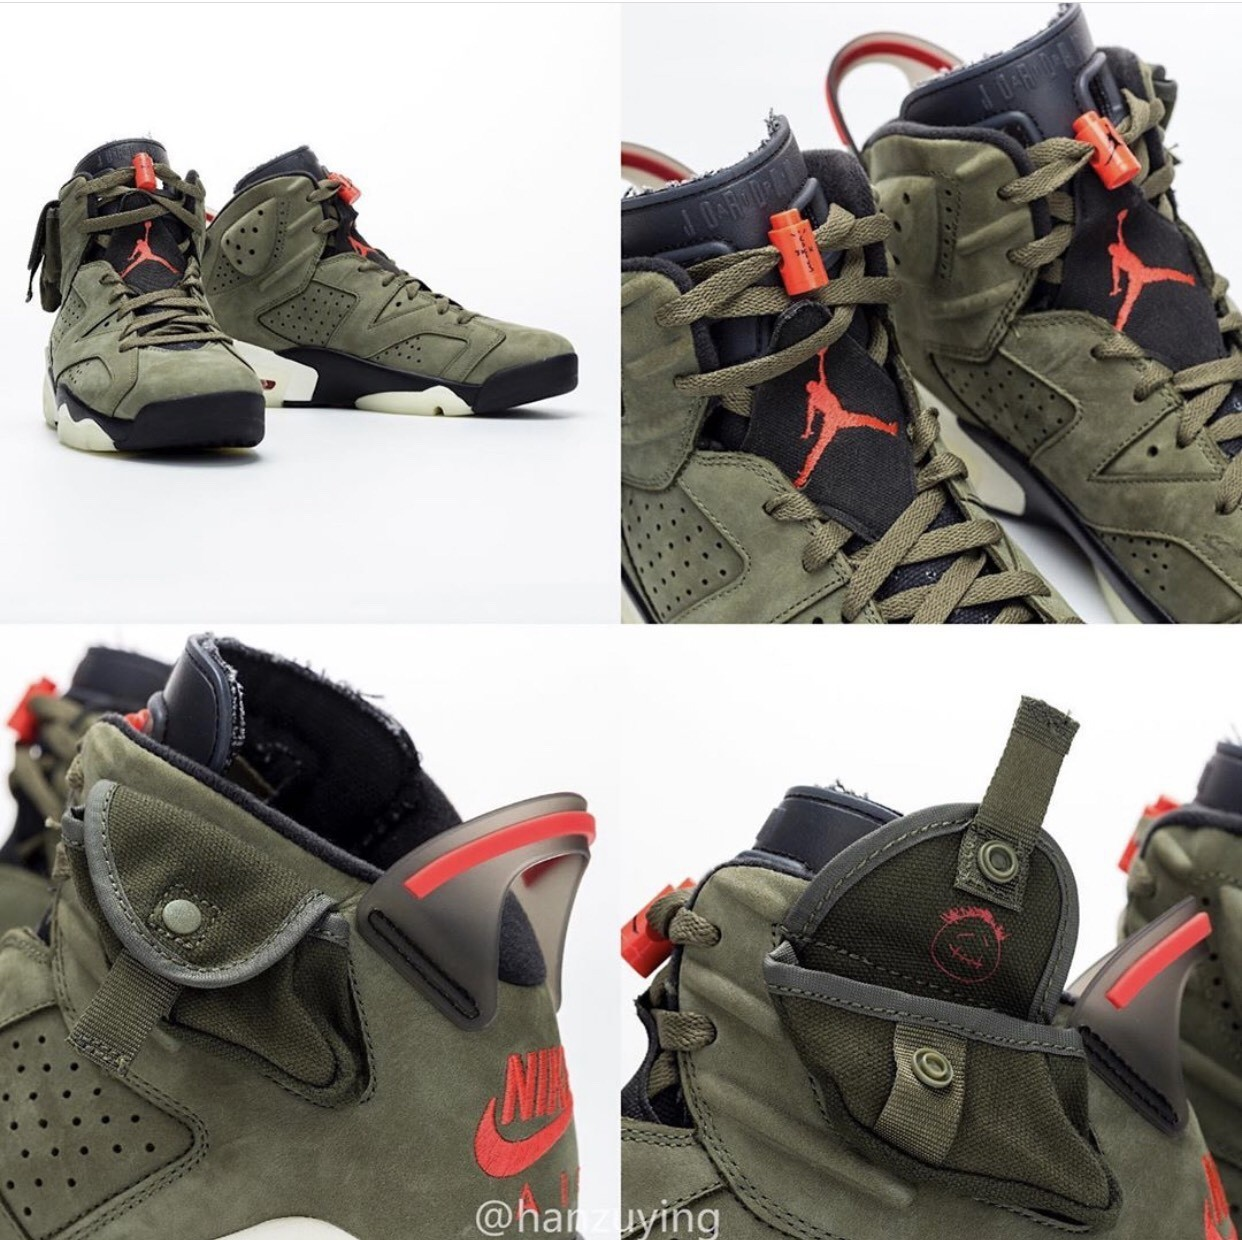 ▲Travis Scott X Air Jordan 6。(圖/翻攝自IG@hanzuying)